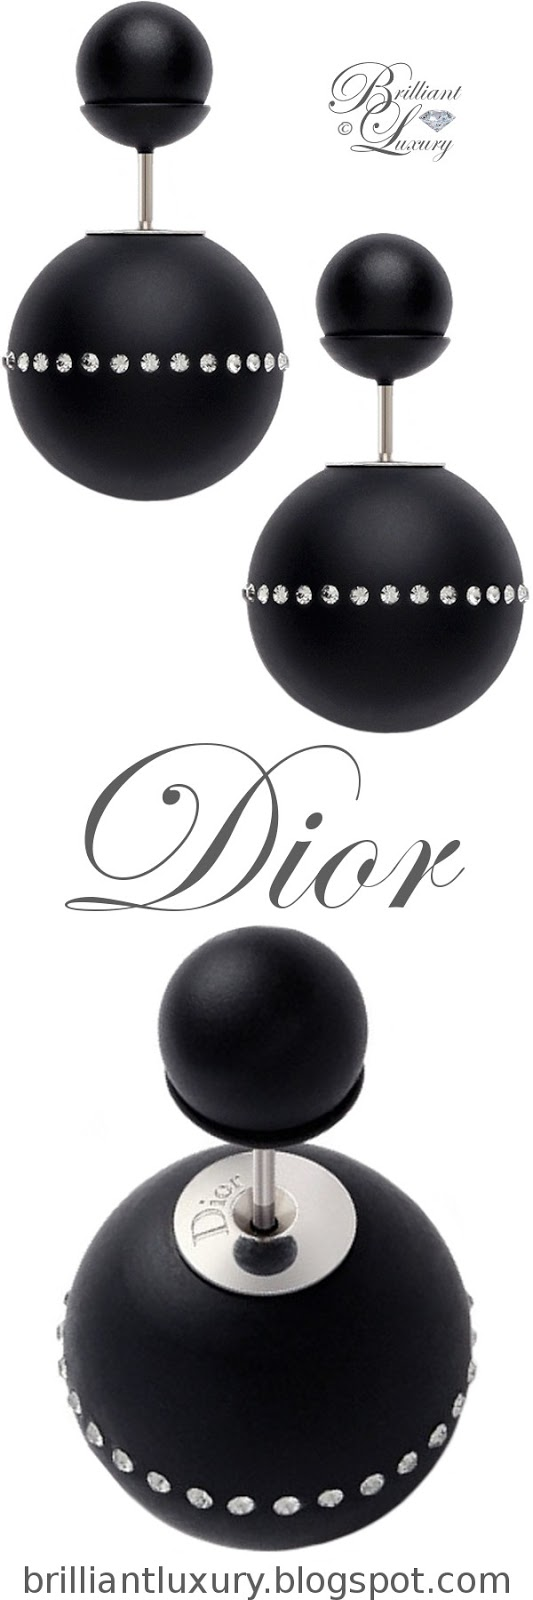 Brilliant Luxury ♦ Dior 'Mise en Dior' tribal-inspired earrings in black with diamonds